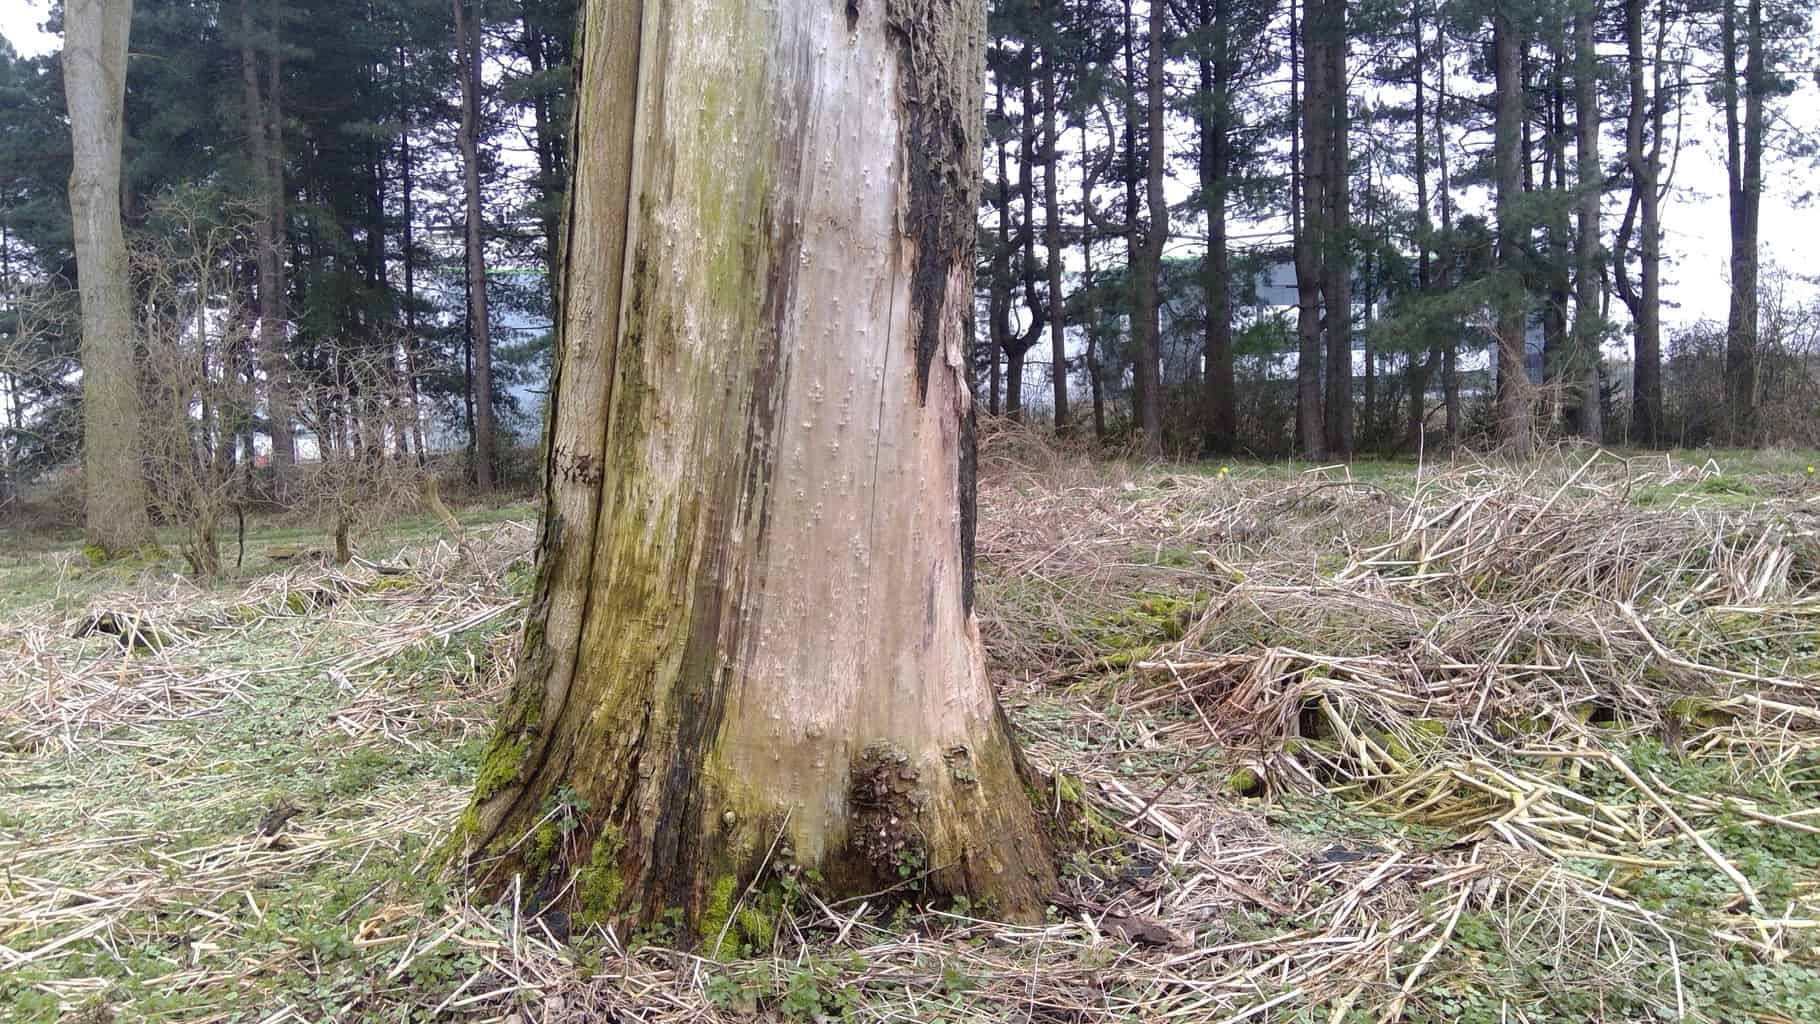 A poplar tree with bark damage